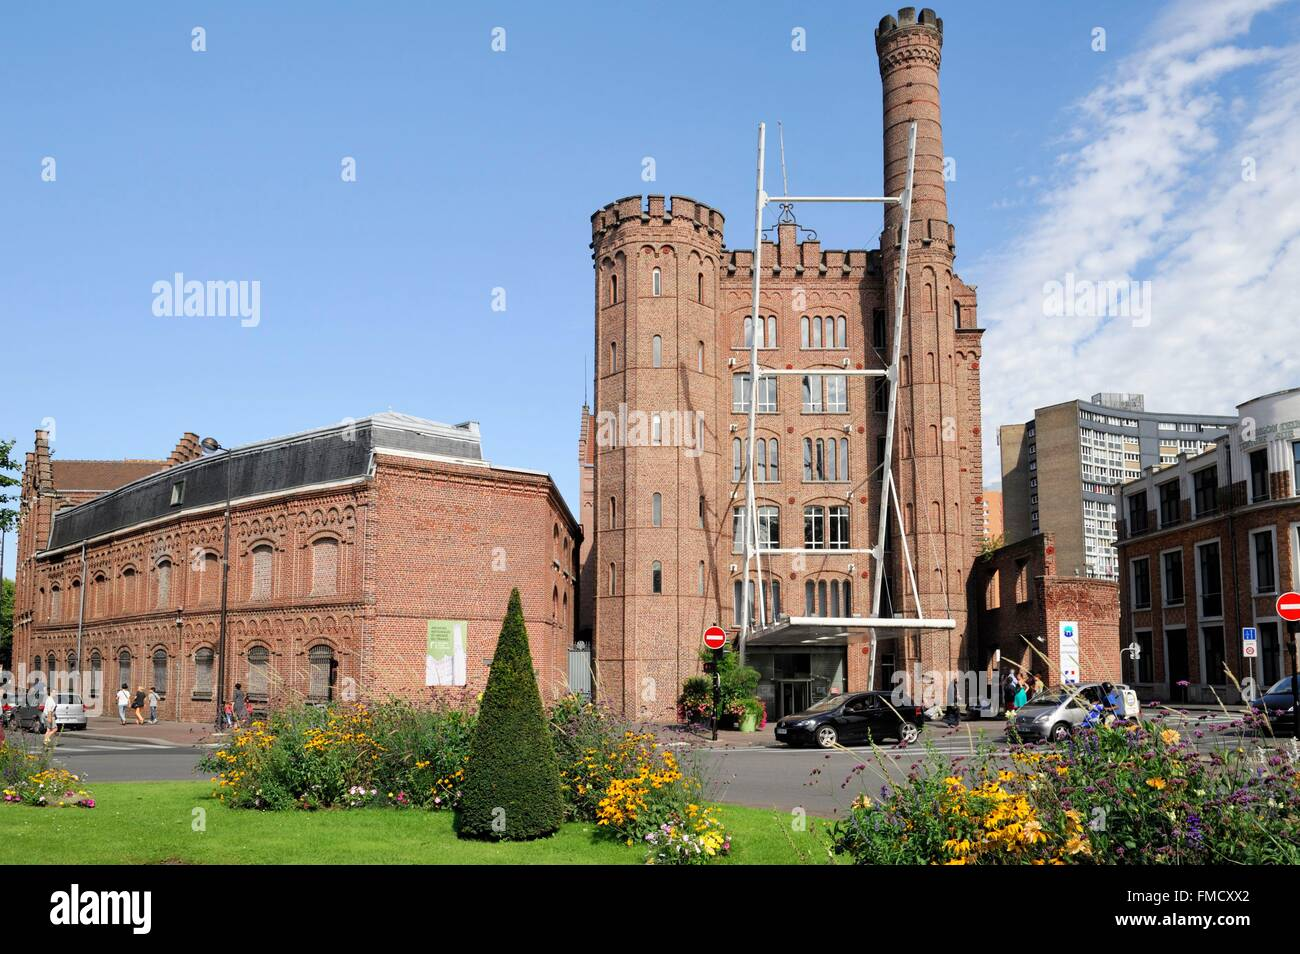 France, Nord, Roubaix, old factory Motte Bossut hosting the National Archives of the working world today - Stock Image